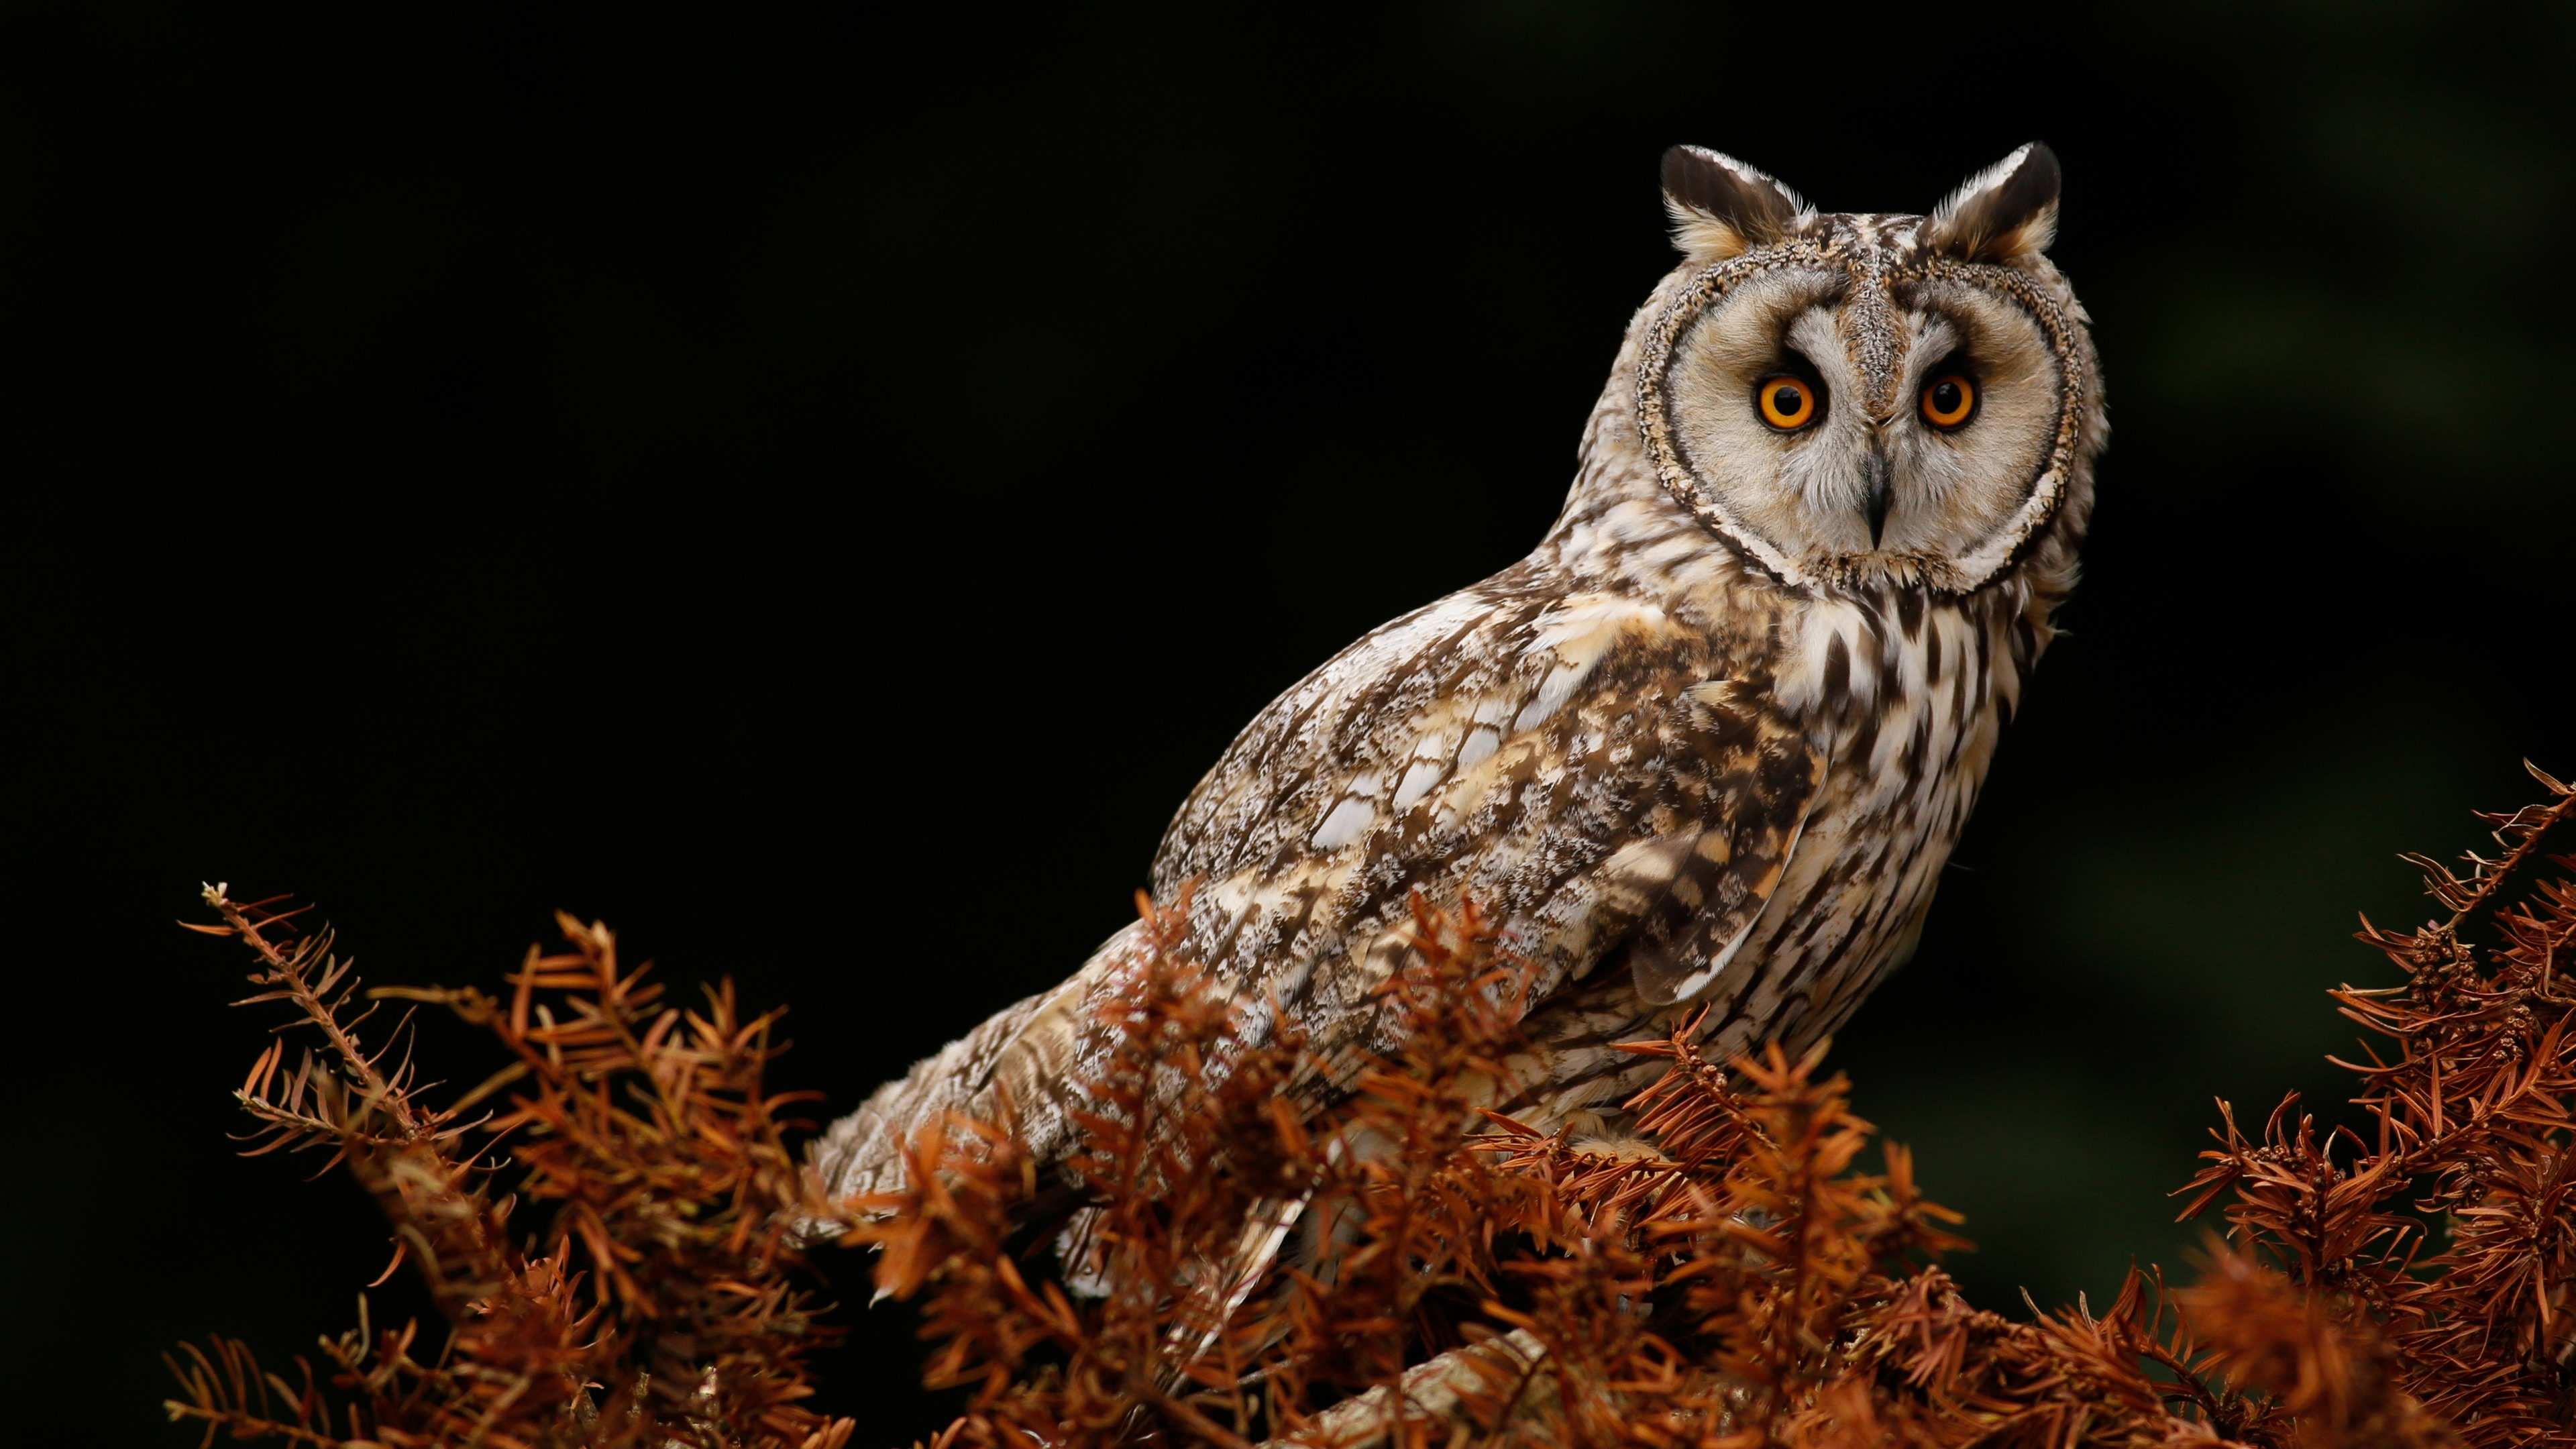 Wallpaper Owl Tree Black Background 3840x2160 Uhd 4k Picture Image